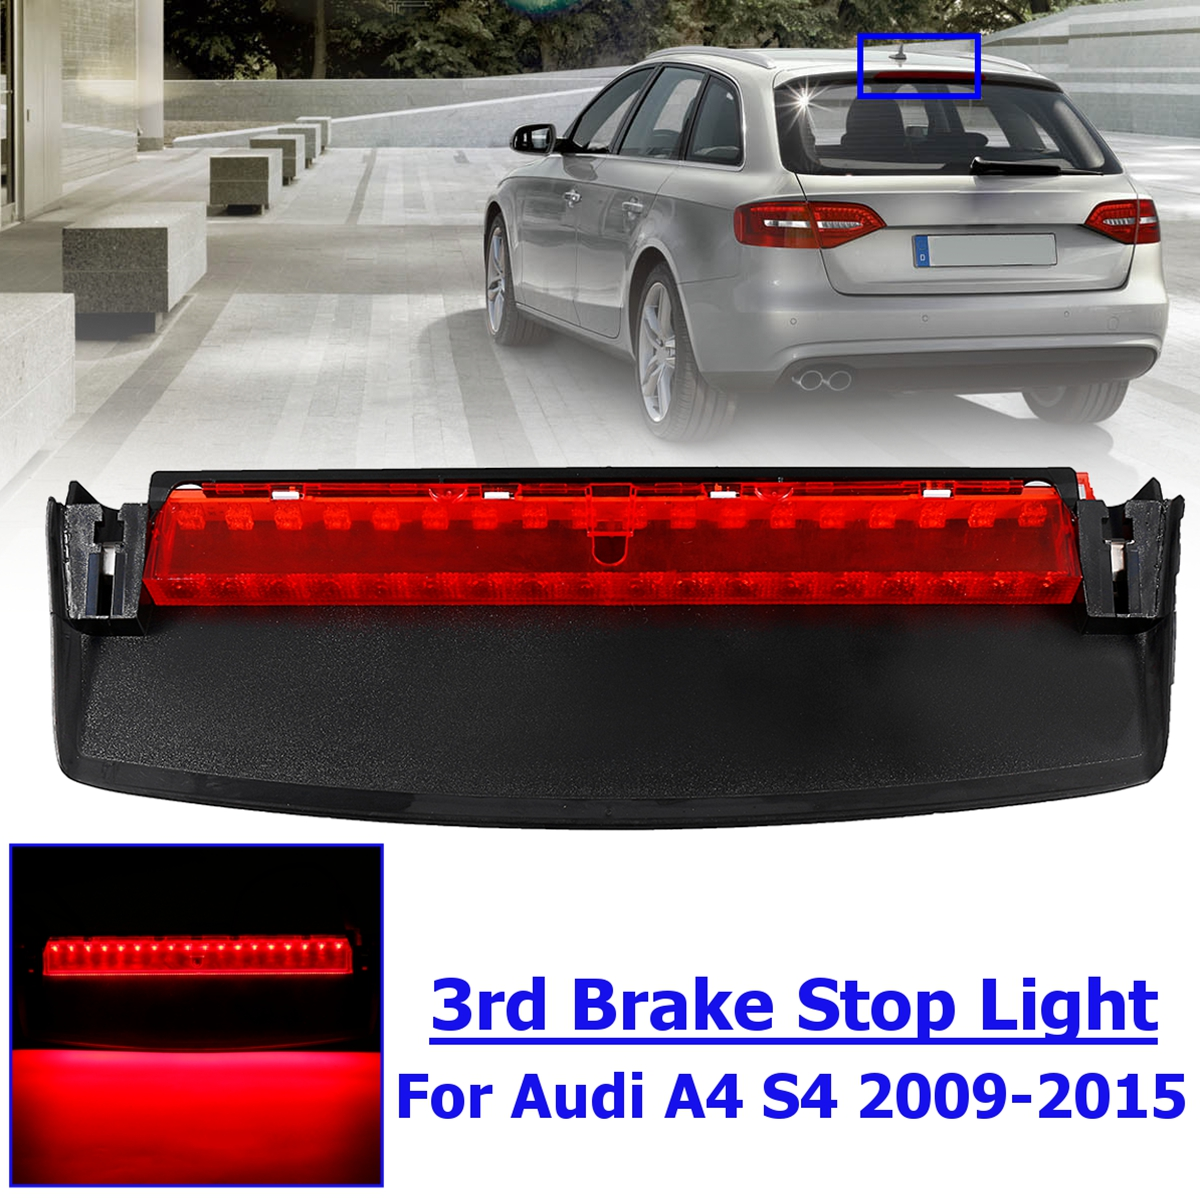 For Audi A4 Quattro S4 2009 2010 2011 2012 2013 2014 2015 8K5945097 Rear LED Third High Brake Mount Stop Lamp Light for audi a4 b8 s4 a4 allroad 2008 2009 2010 2011 2012 2013 2014 2015 car styling right side led fog light fog lamp